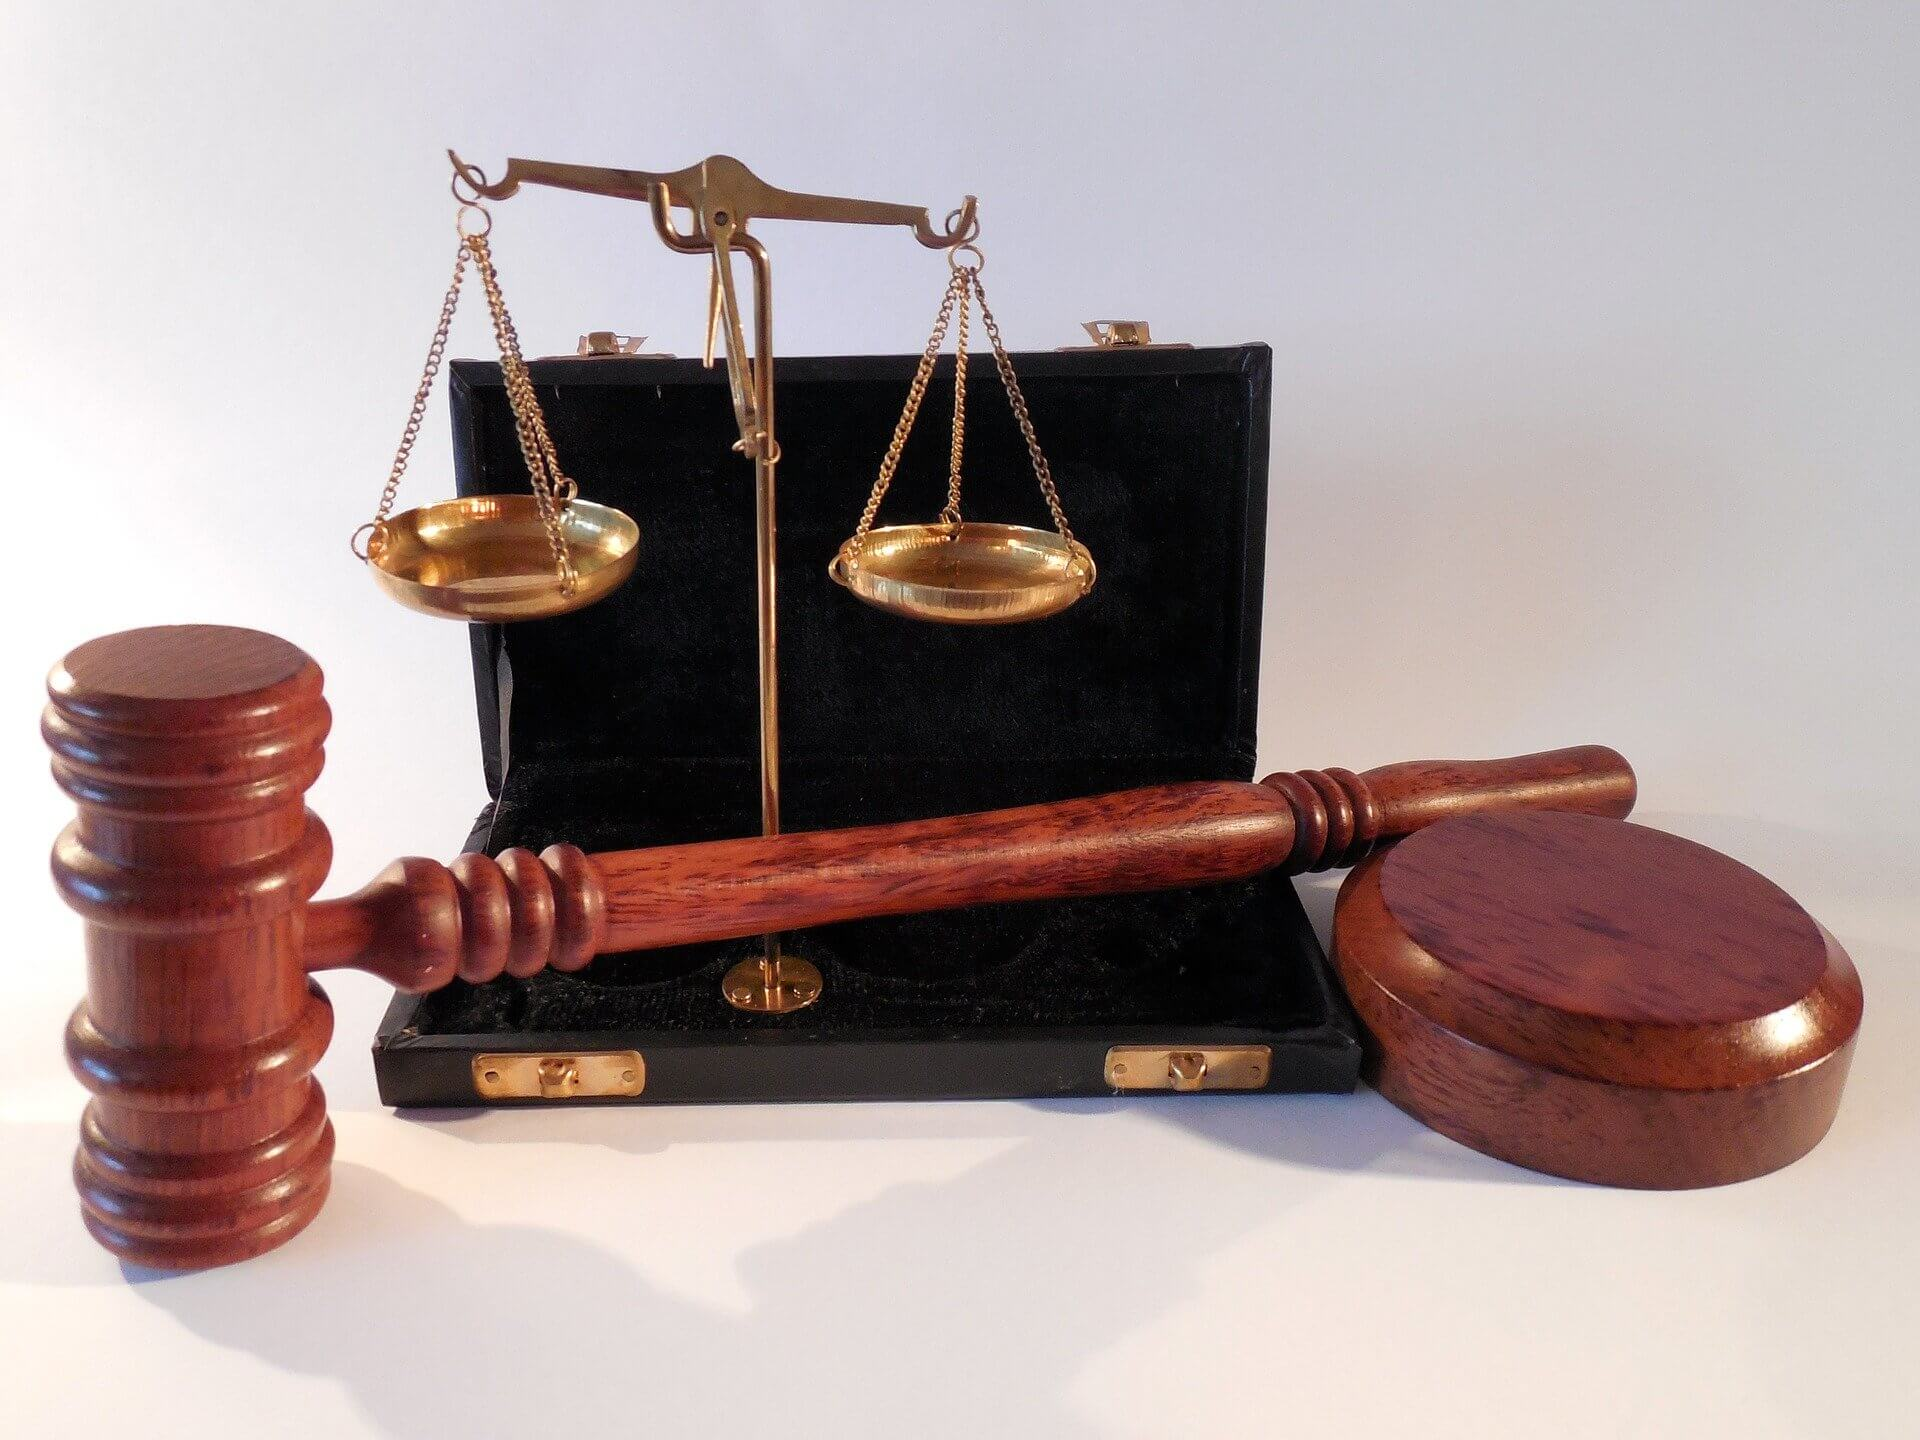 A desktop-sized model of the scales of justice sitting in a black case, along with a polished wooden gavel.